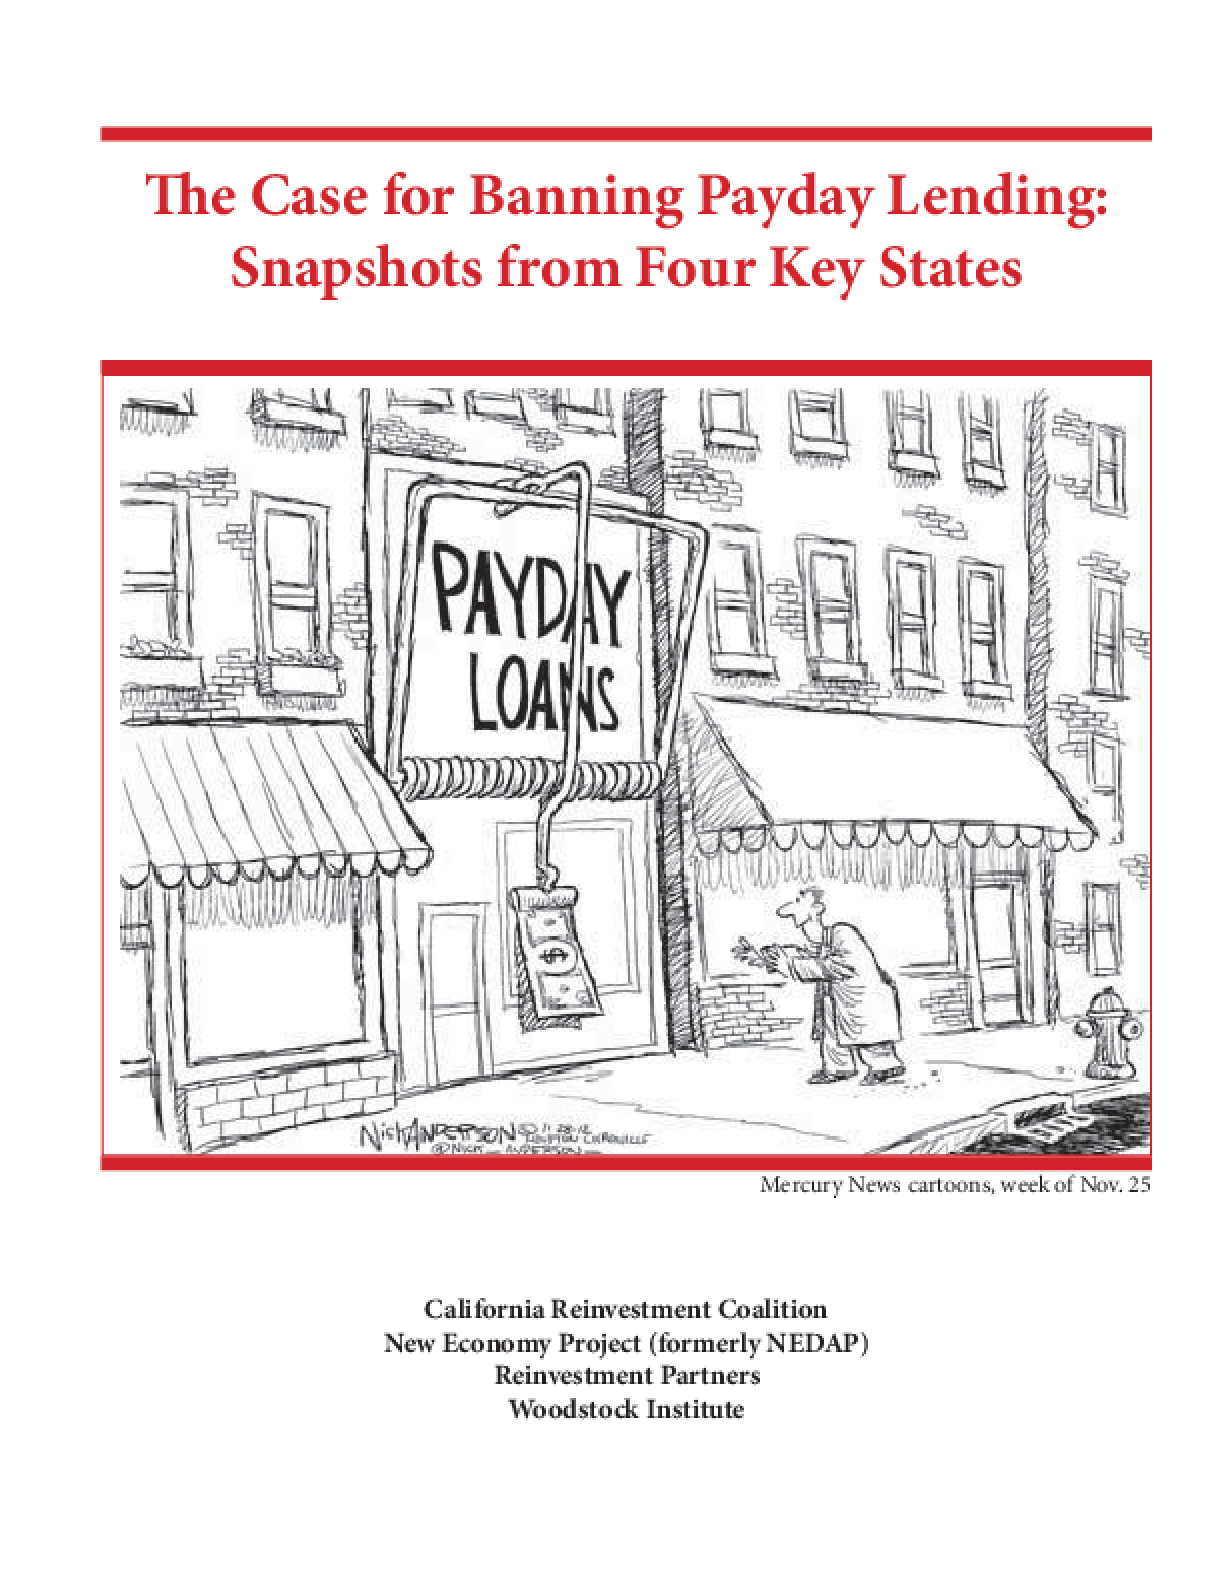 The Case for Banning Payday Lending: Snapshots from Four Key States